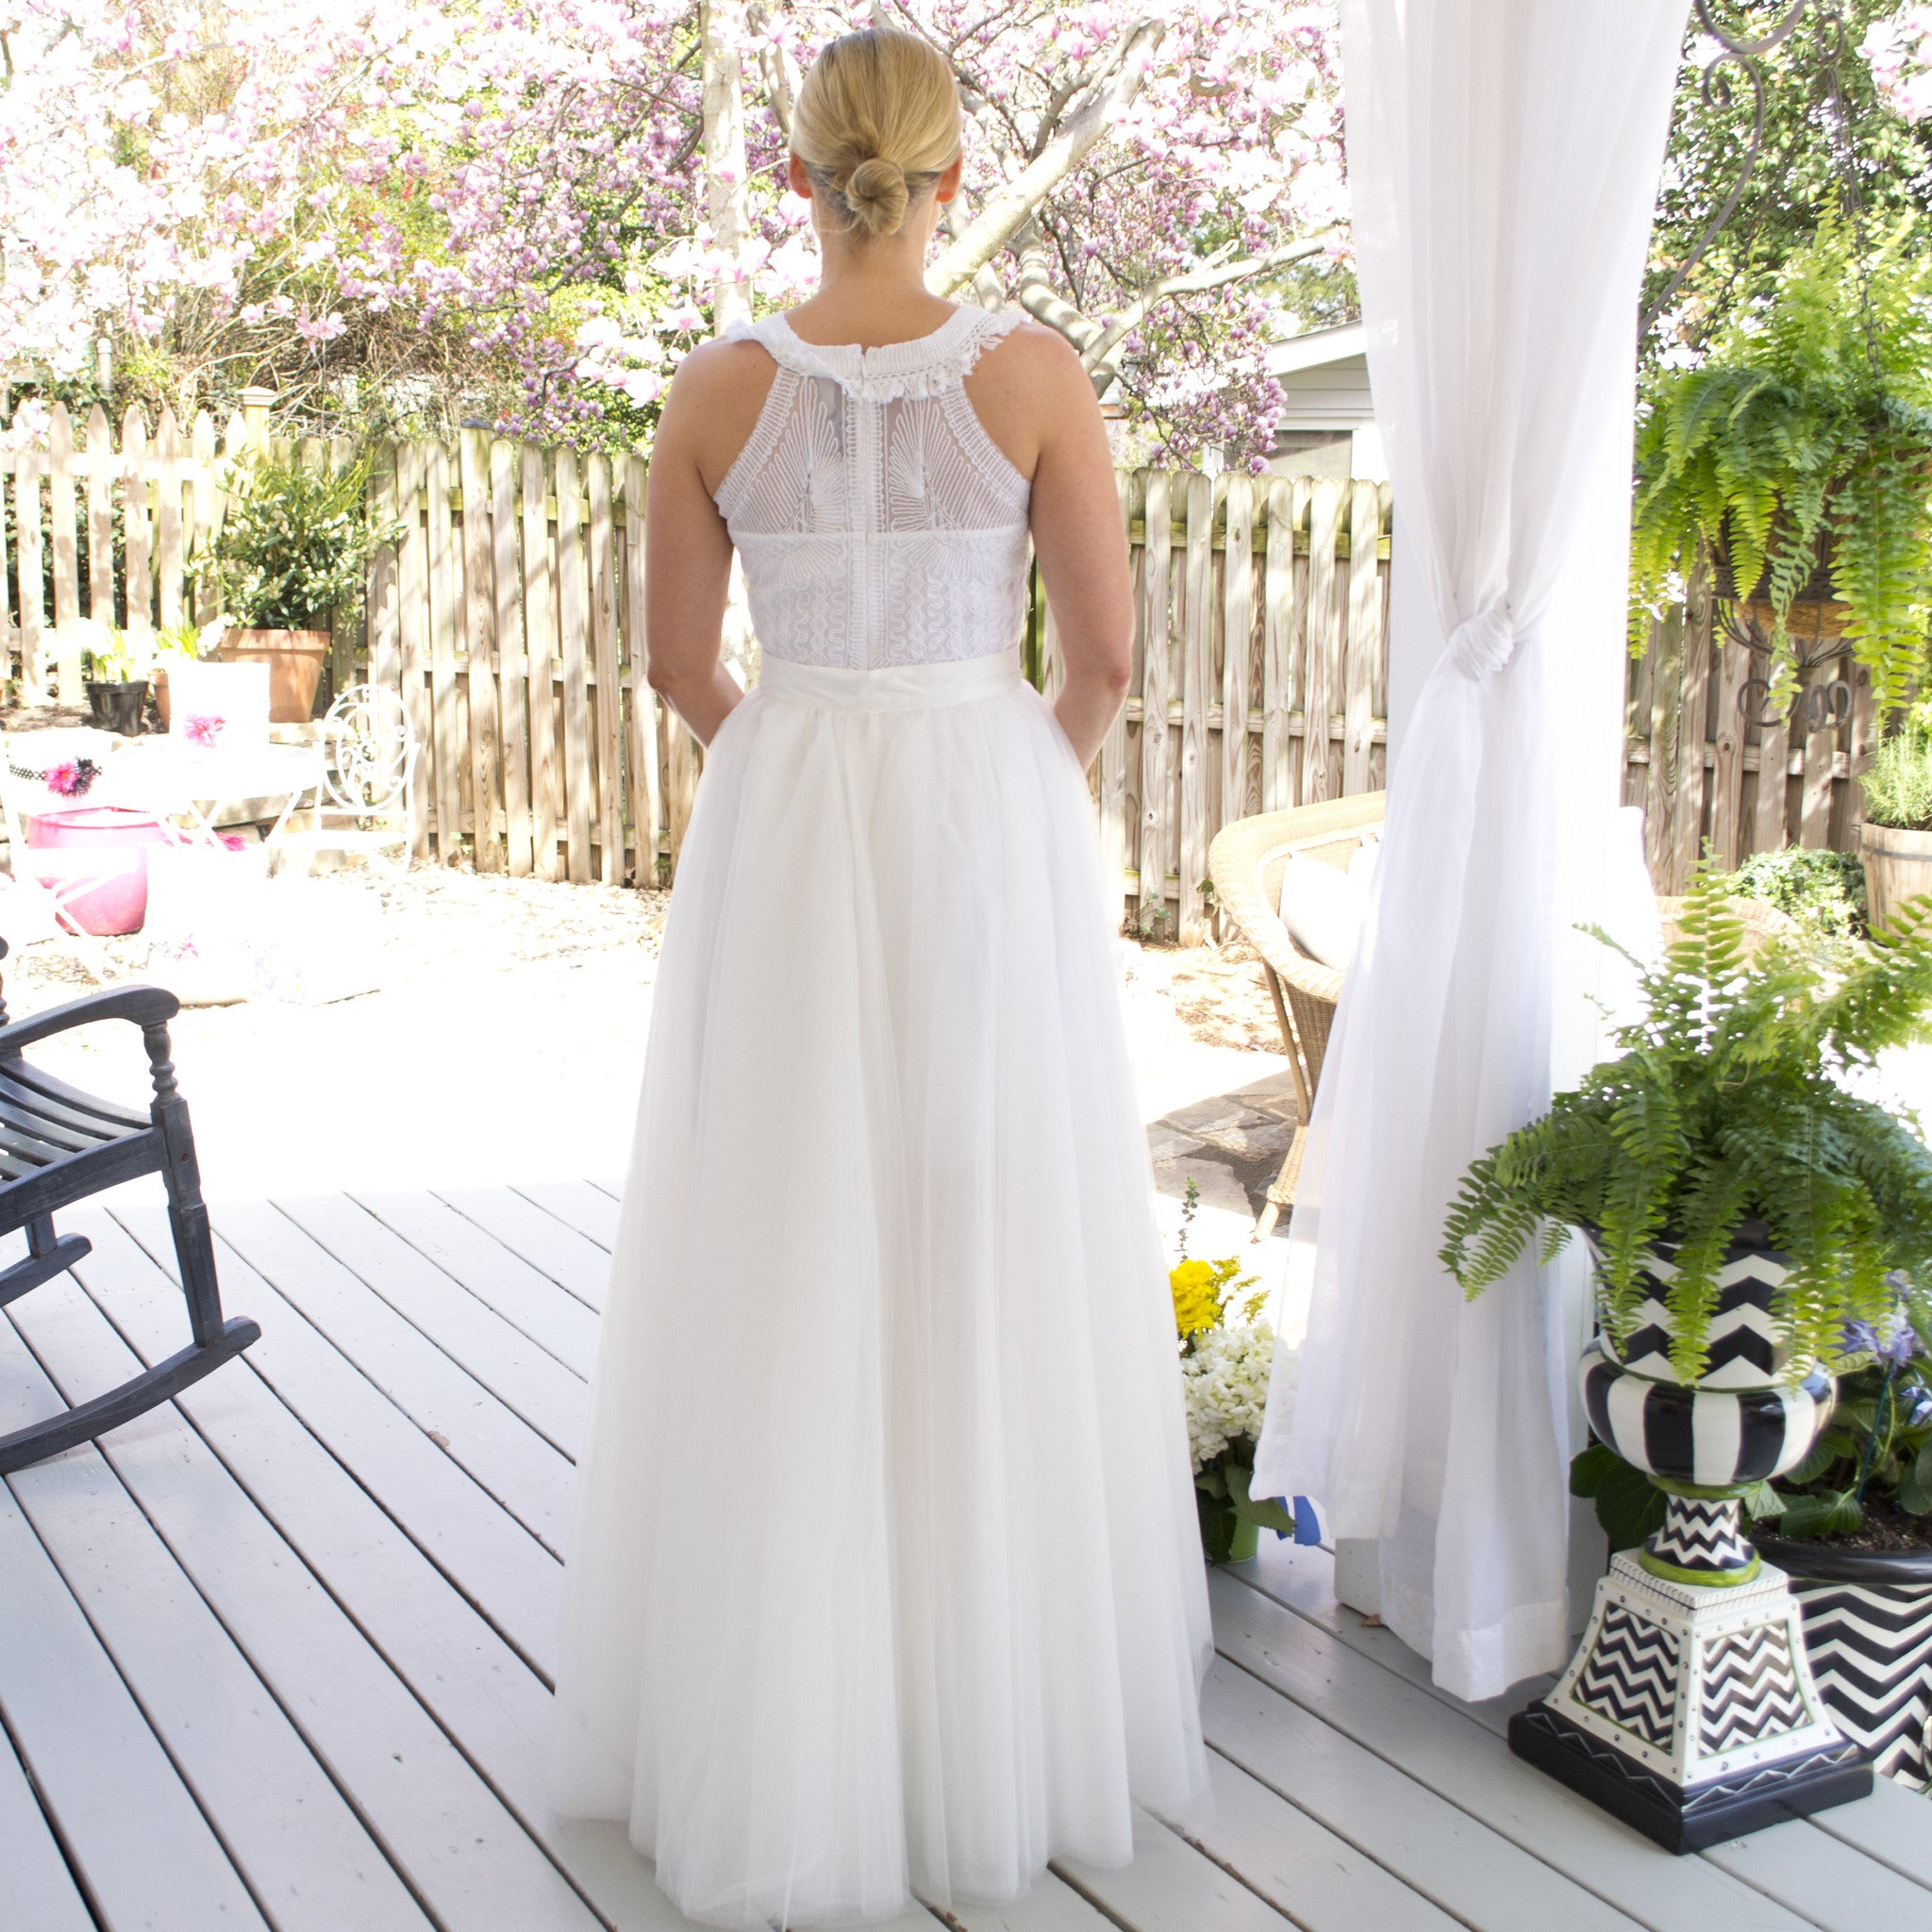 Tulle Skirt Overlay - white